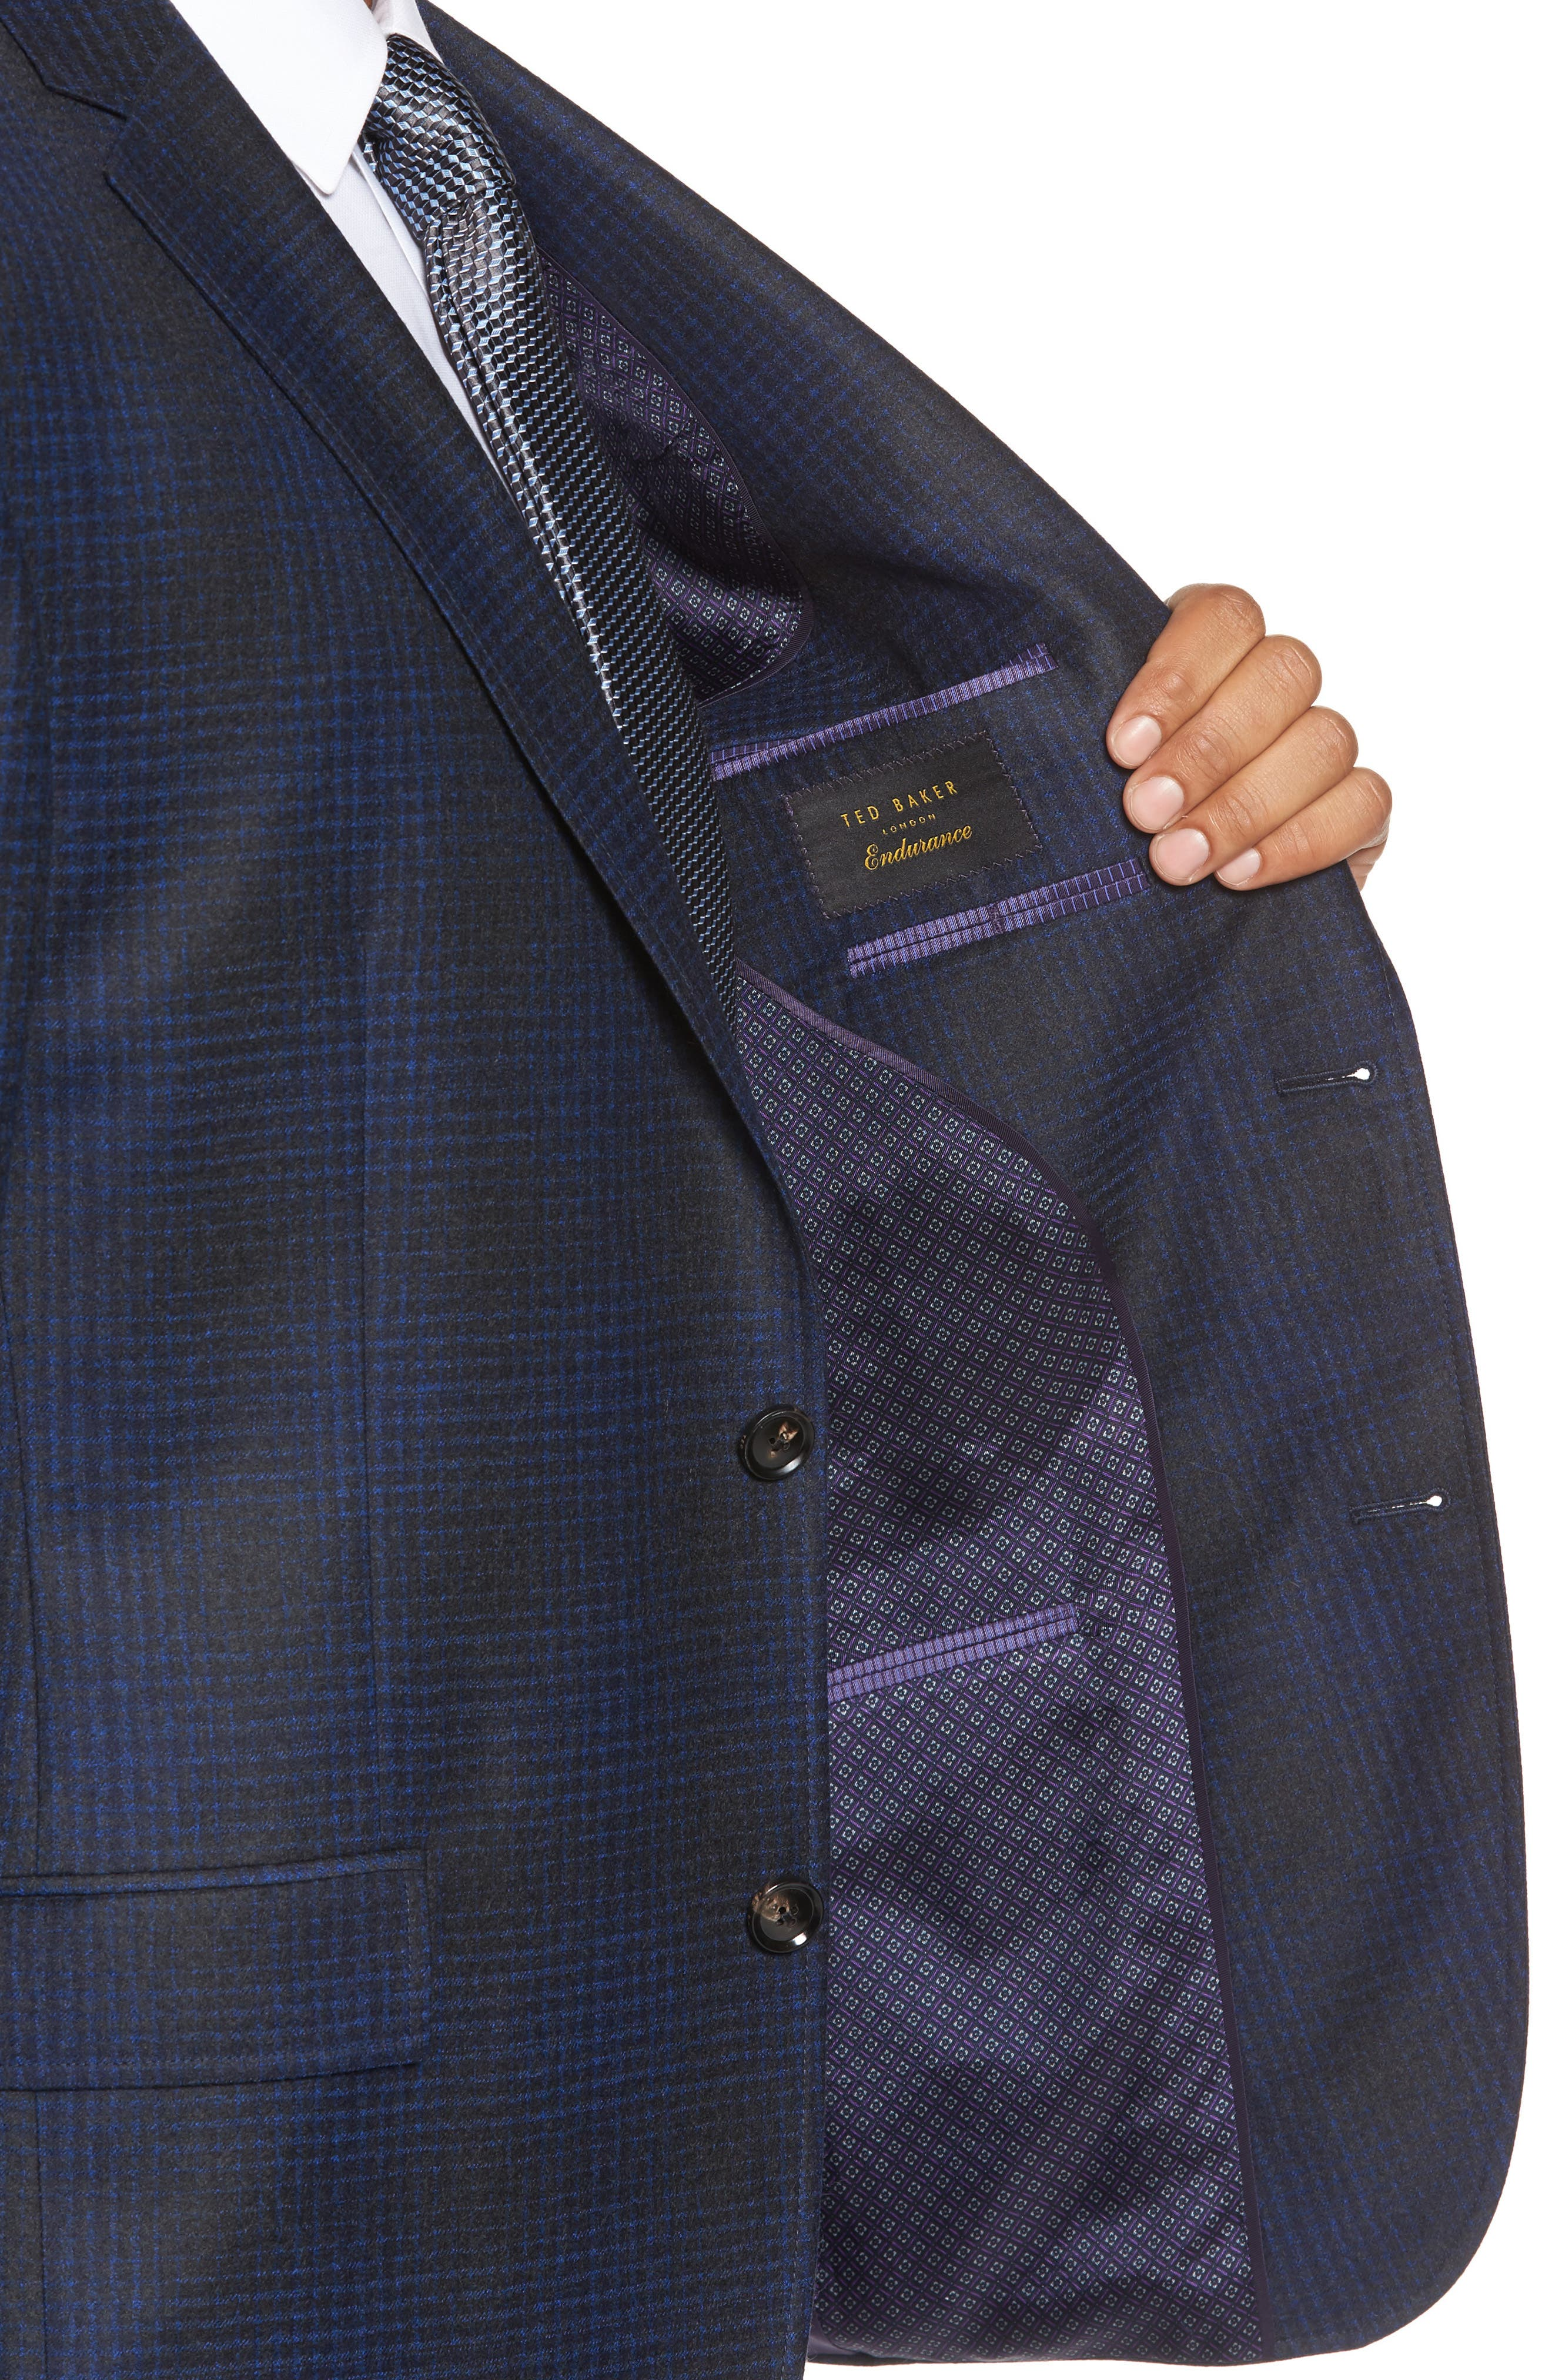 Trim Fit Plaid Wool Sport Coat,                             Alternate thumbnail 4, color,                             Charcoal